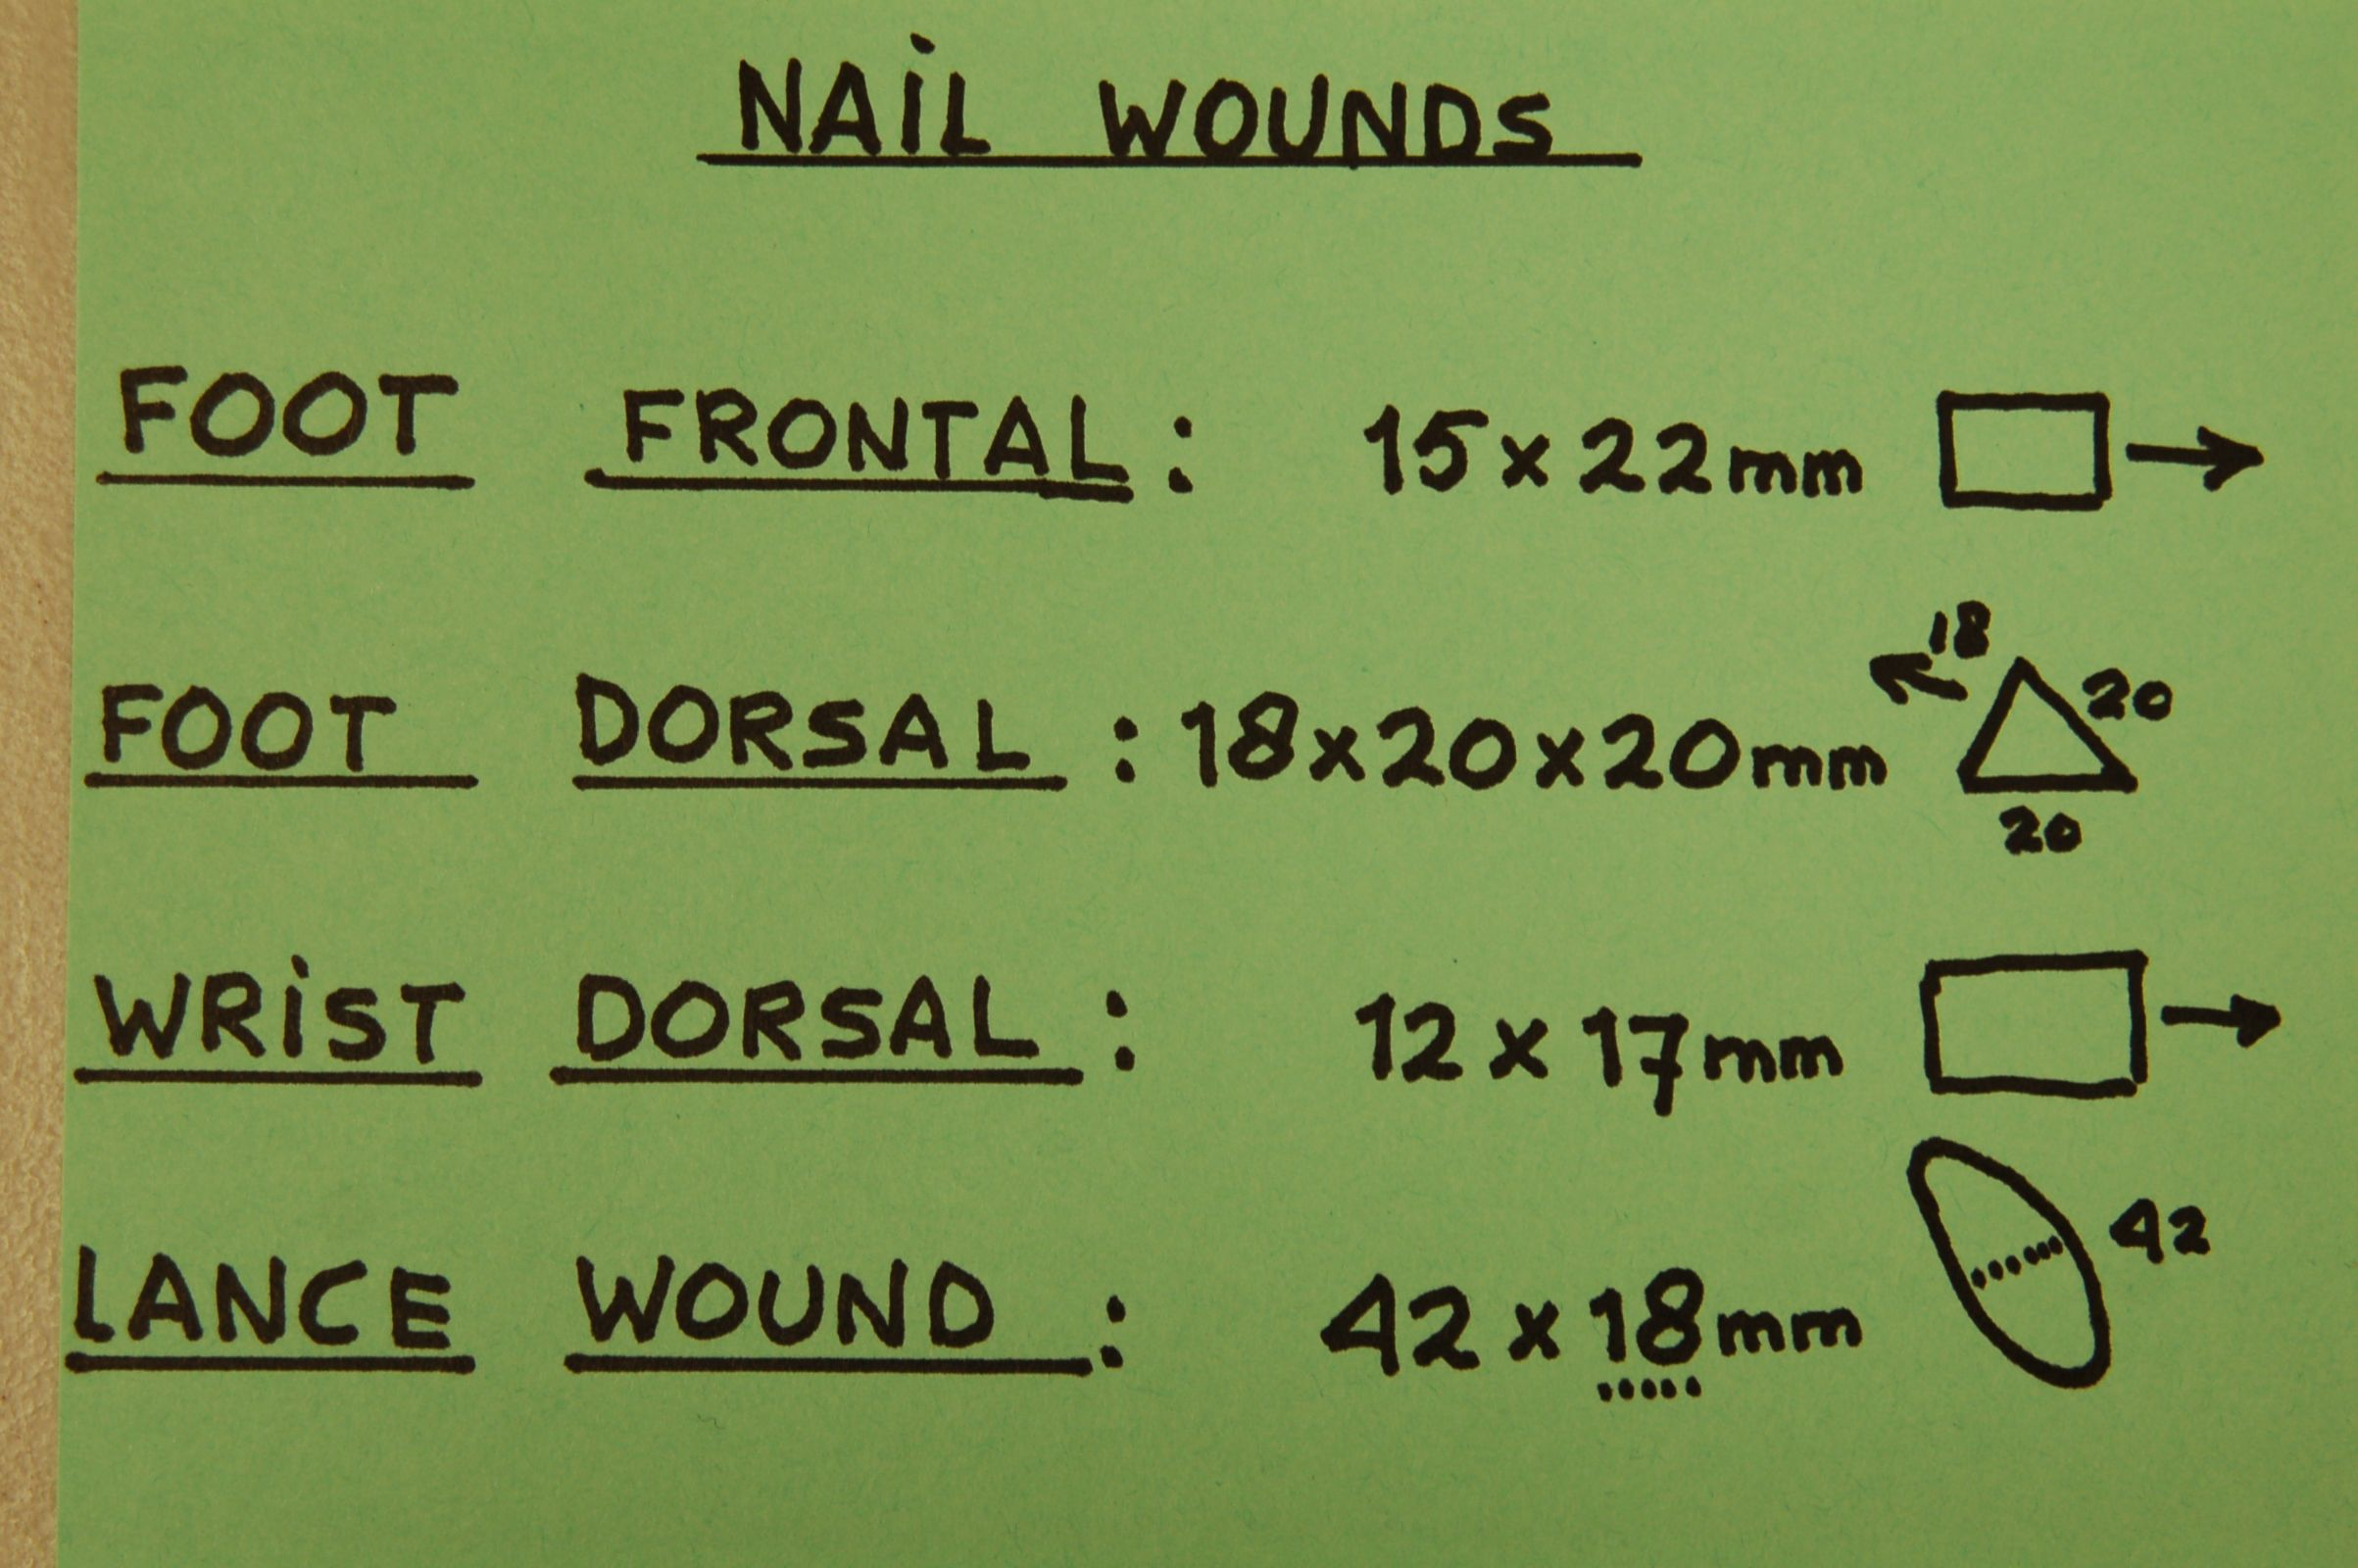 Photo 7. Measurement of spear wound